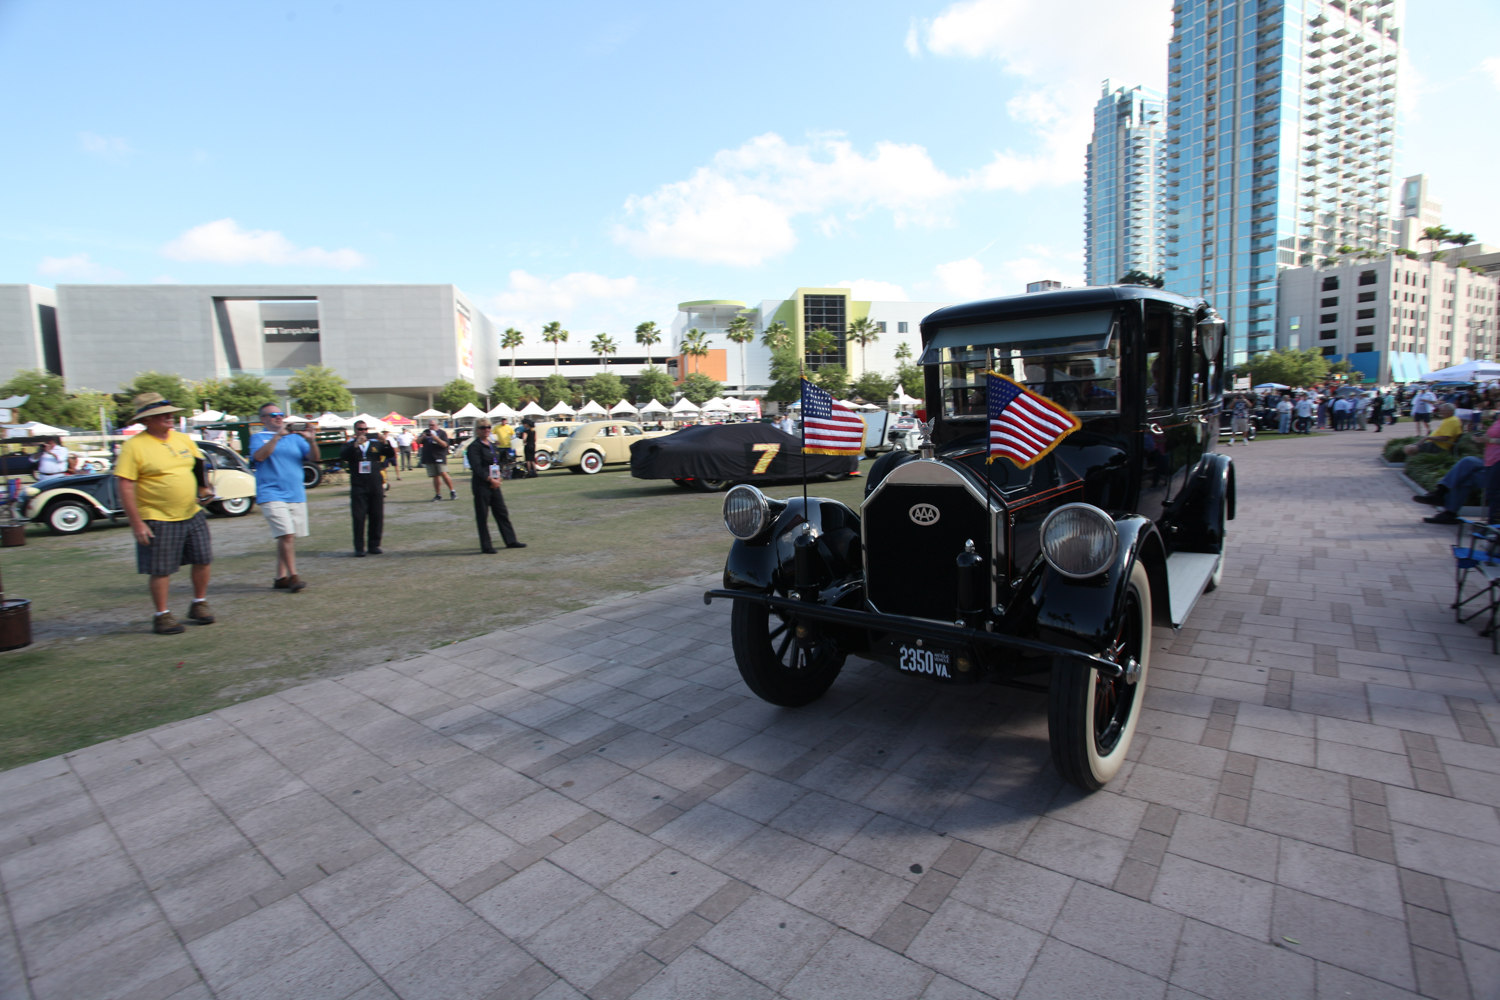 The show was officially opened when President Woodrow Wilson's 1919 Pierce-Arrow limo was driven onto the field.